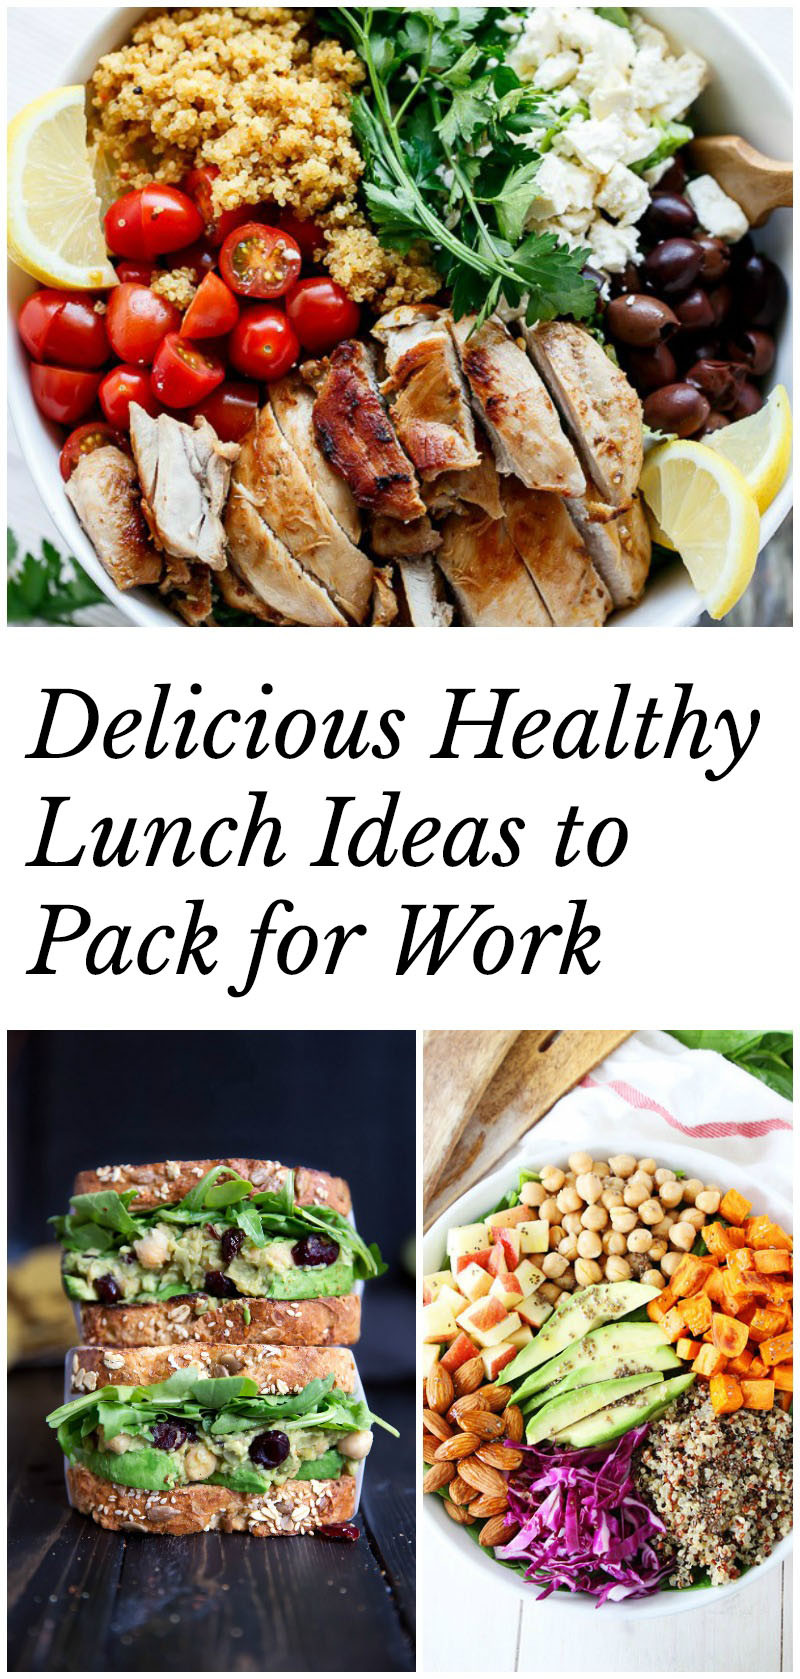 Healthy Lunch And Dinner Ideas  Healthy Lunch Ideas to Pack for Work 40 recipes